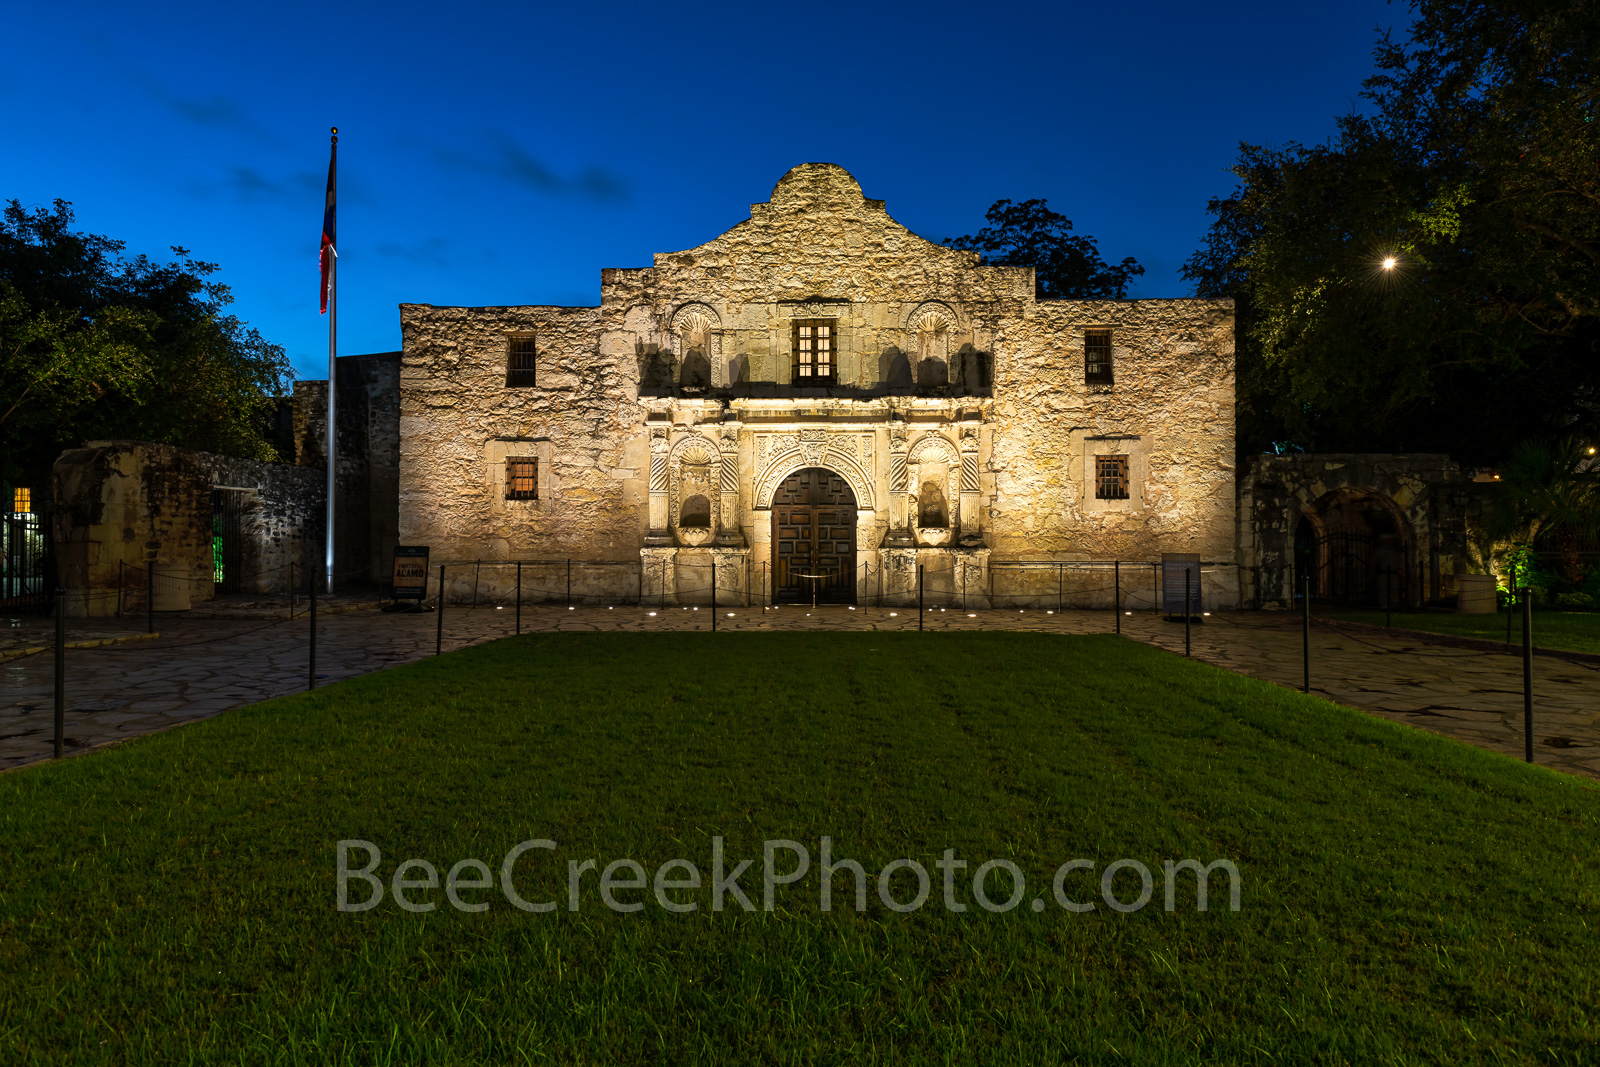 Texas Alamo, San Antonio, Alamo, historic, history, landmark, twilight, downtown, city, mission, missions, Santa Anna, mexico, tourist, travel, Texas independence,, photo